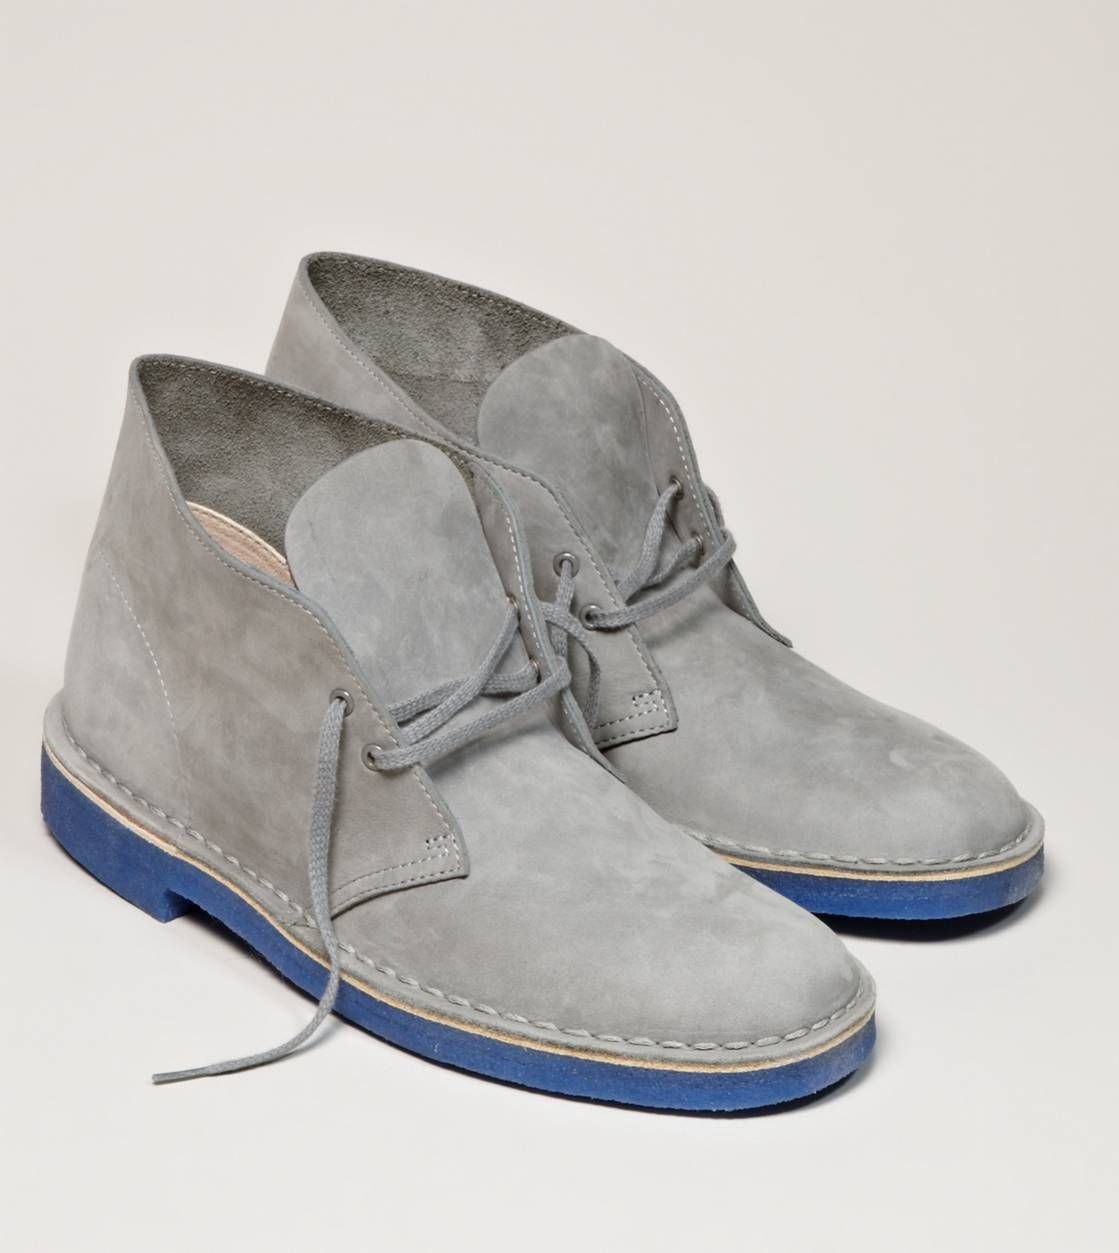 571eb8f2 Clarks Originals Desert Boot, Nice combo of grey with blue sole ...